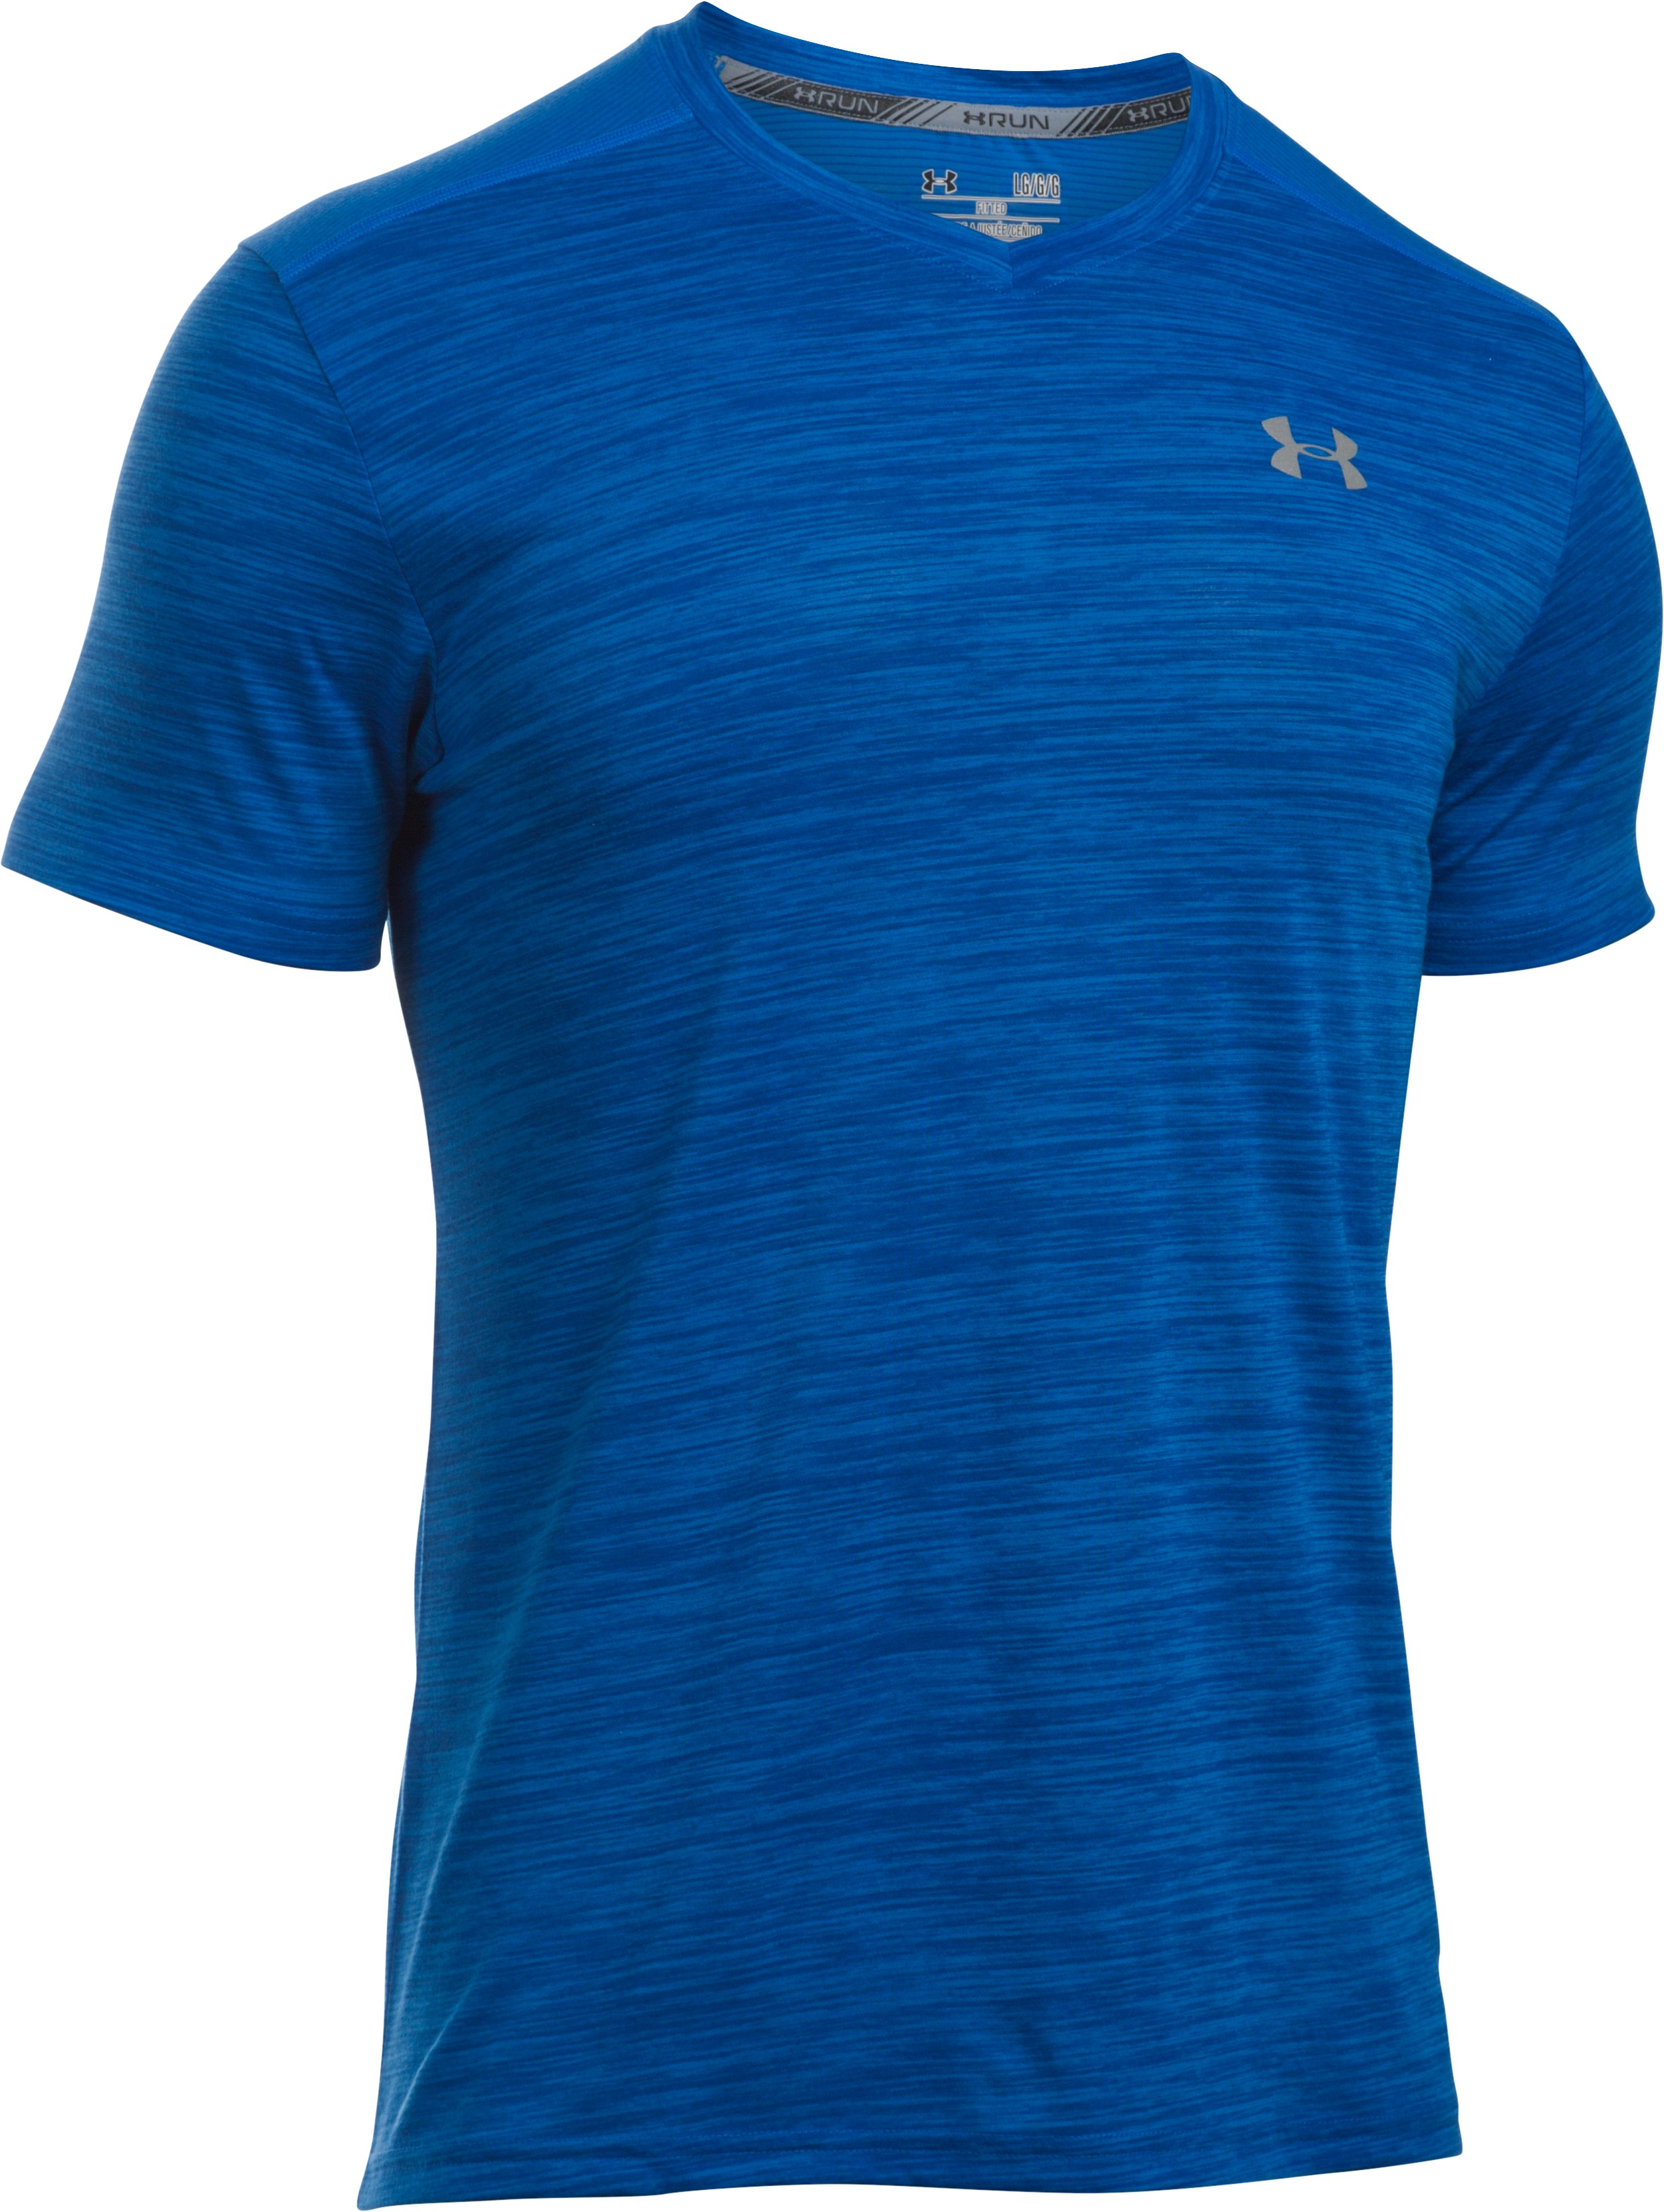 Men's Threadborne™ Streaker Run V-Neck T-Shirt, ULTRA BLUE,